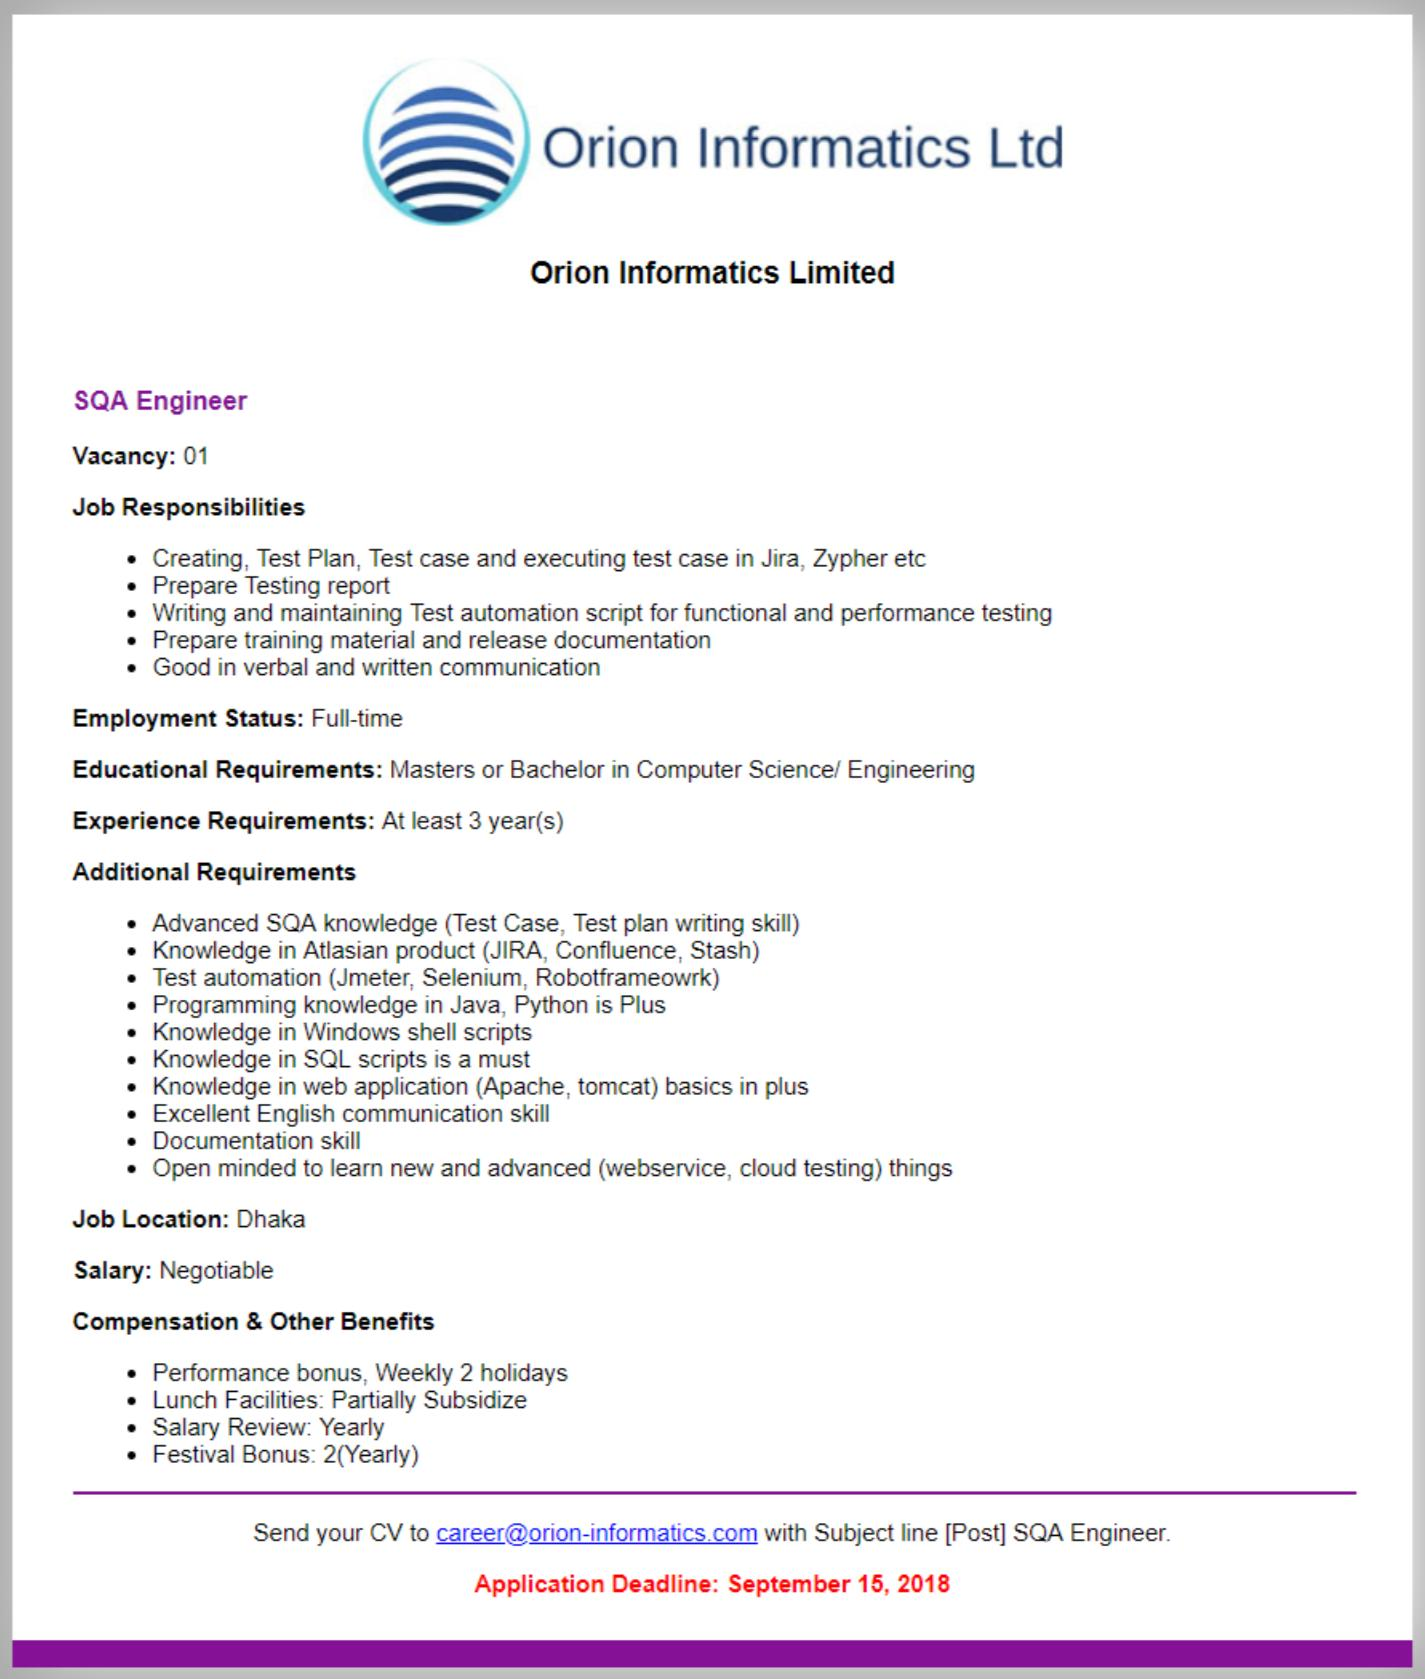 Orion Informatics Job circular 2018